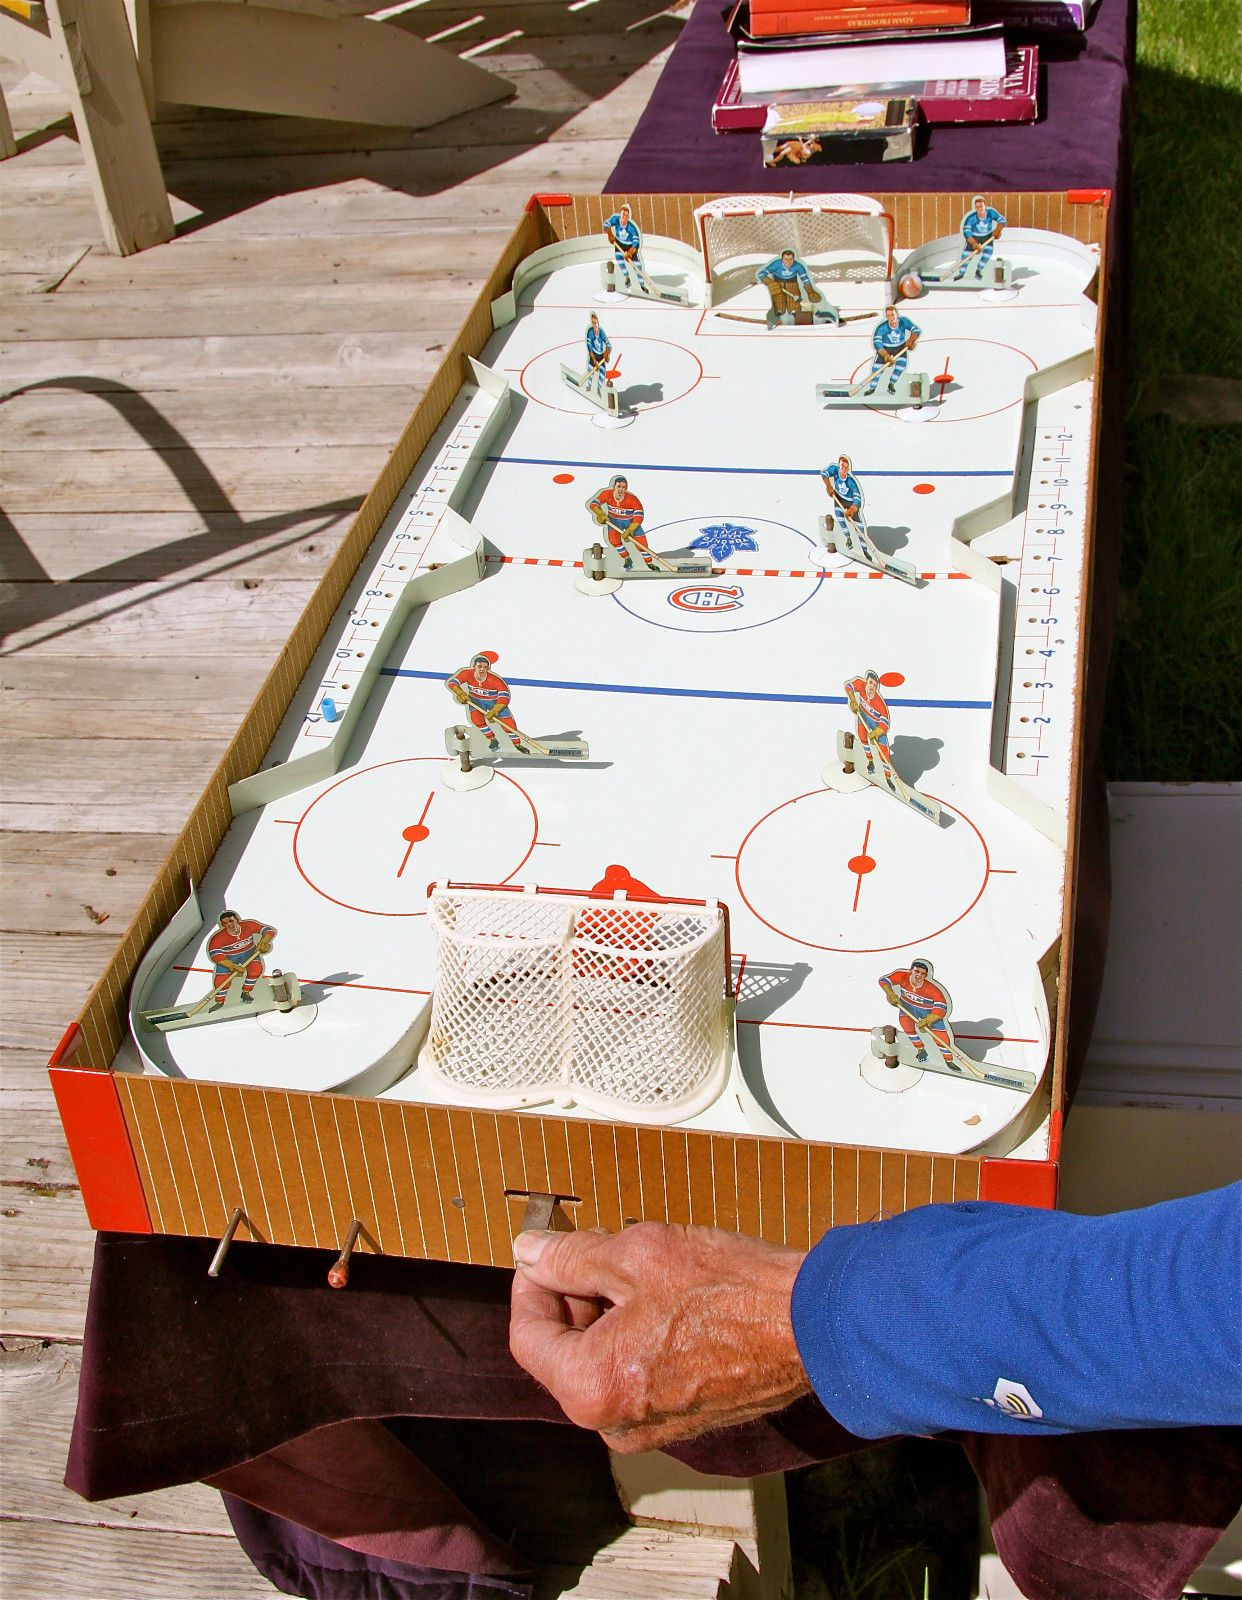 Eagle Toys Vintage Table Hockey Game NHL Pro Canadians